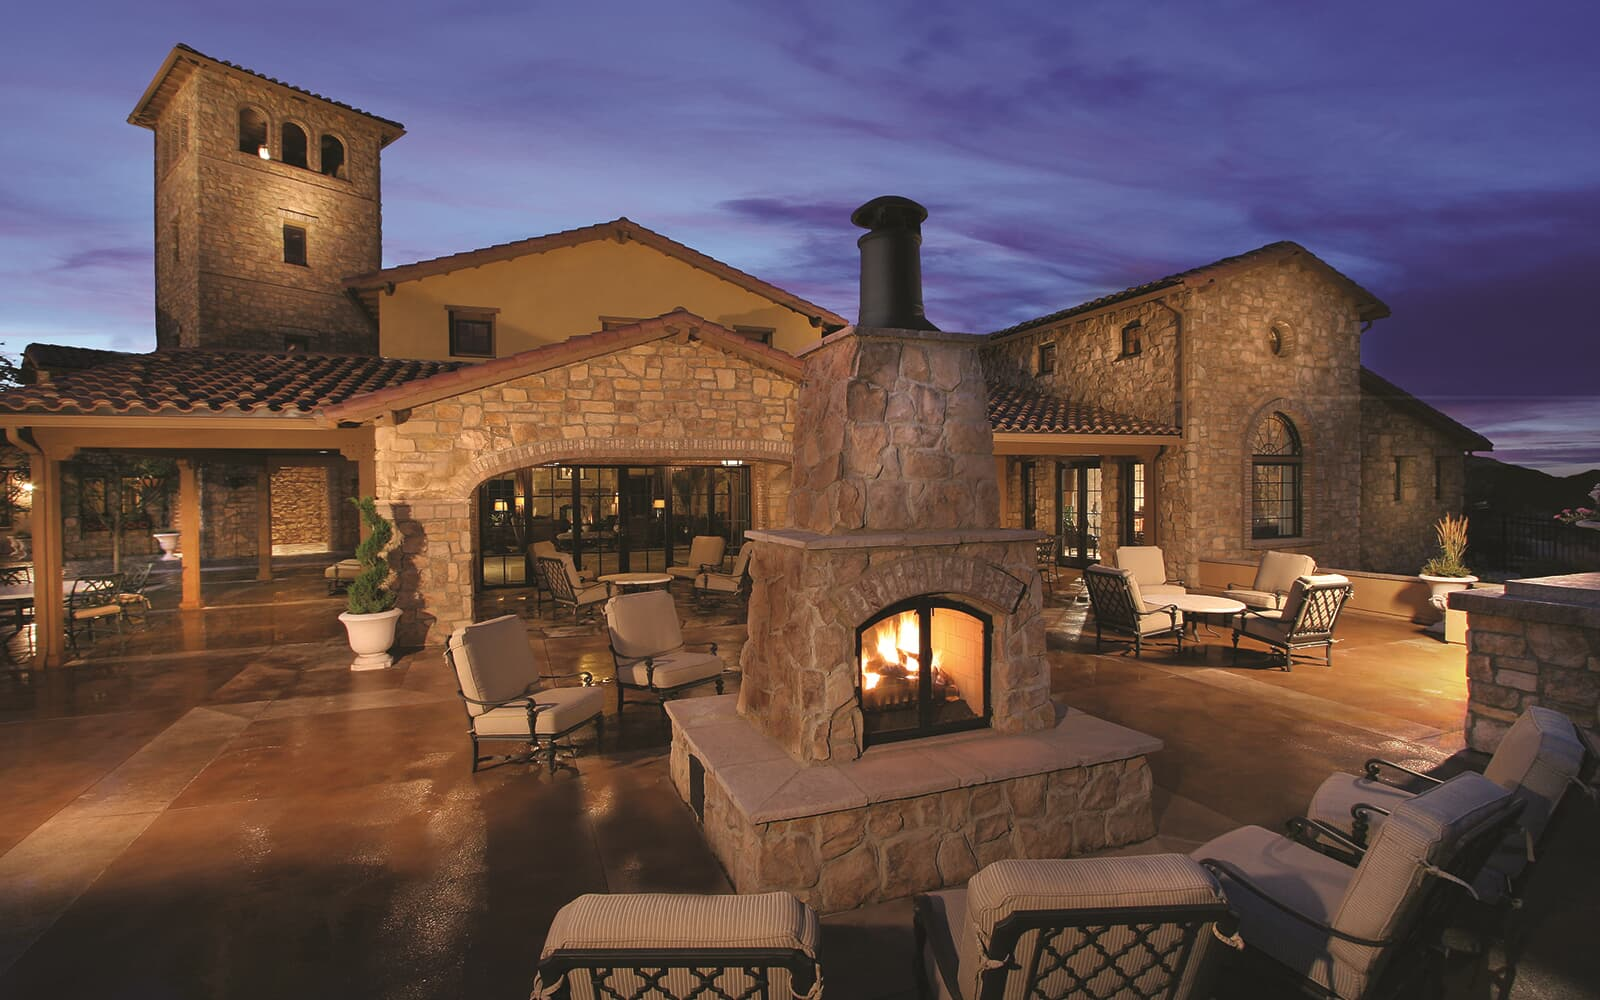 Lifestyle-Photo-Community-Retreat-Fireplace-Patio-Tower-Dusk-Solterra-Denver-Colorado